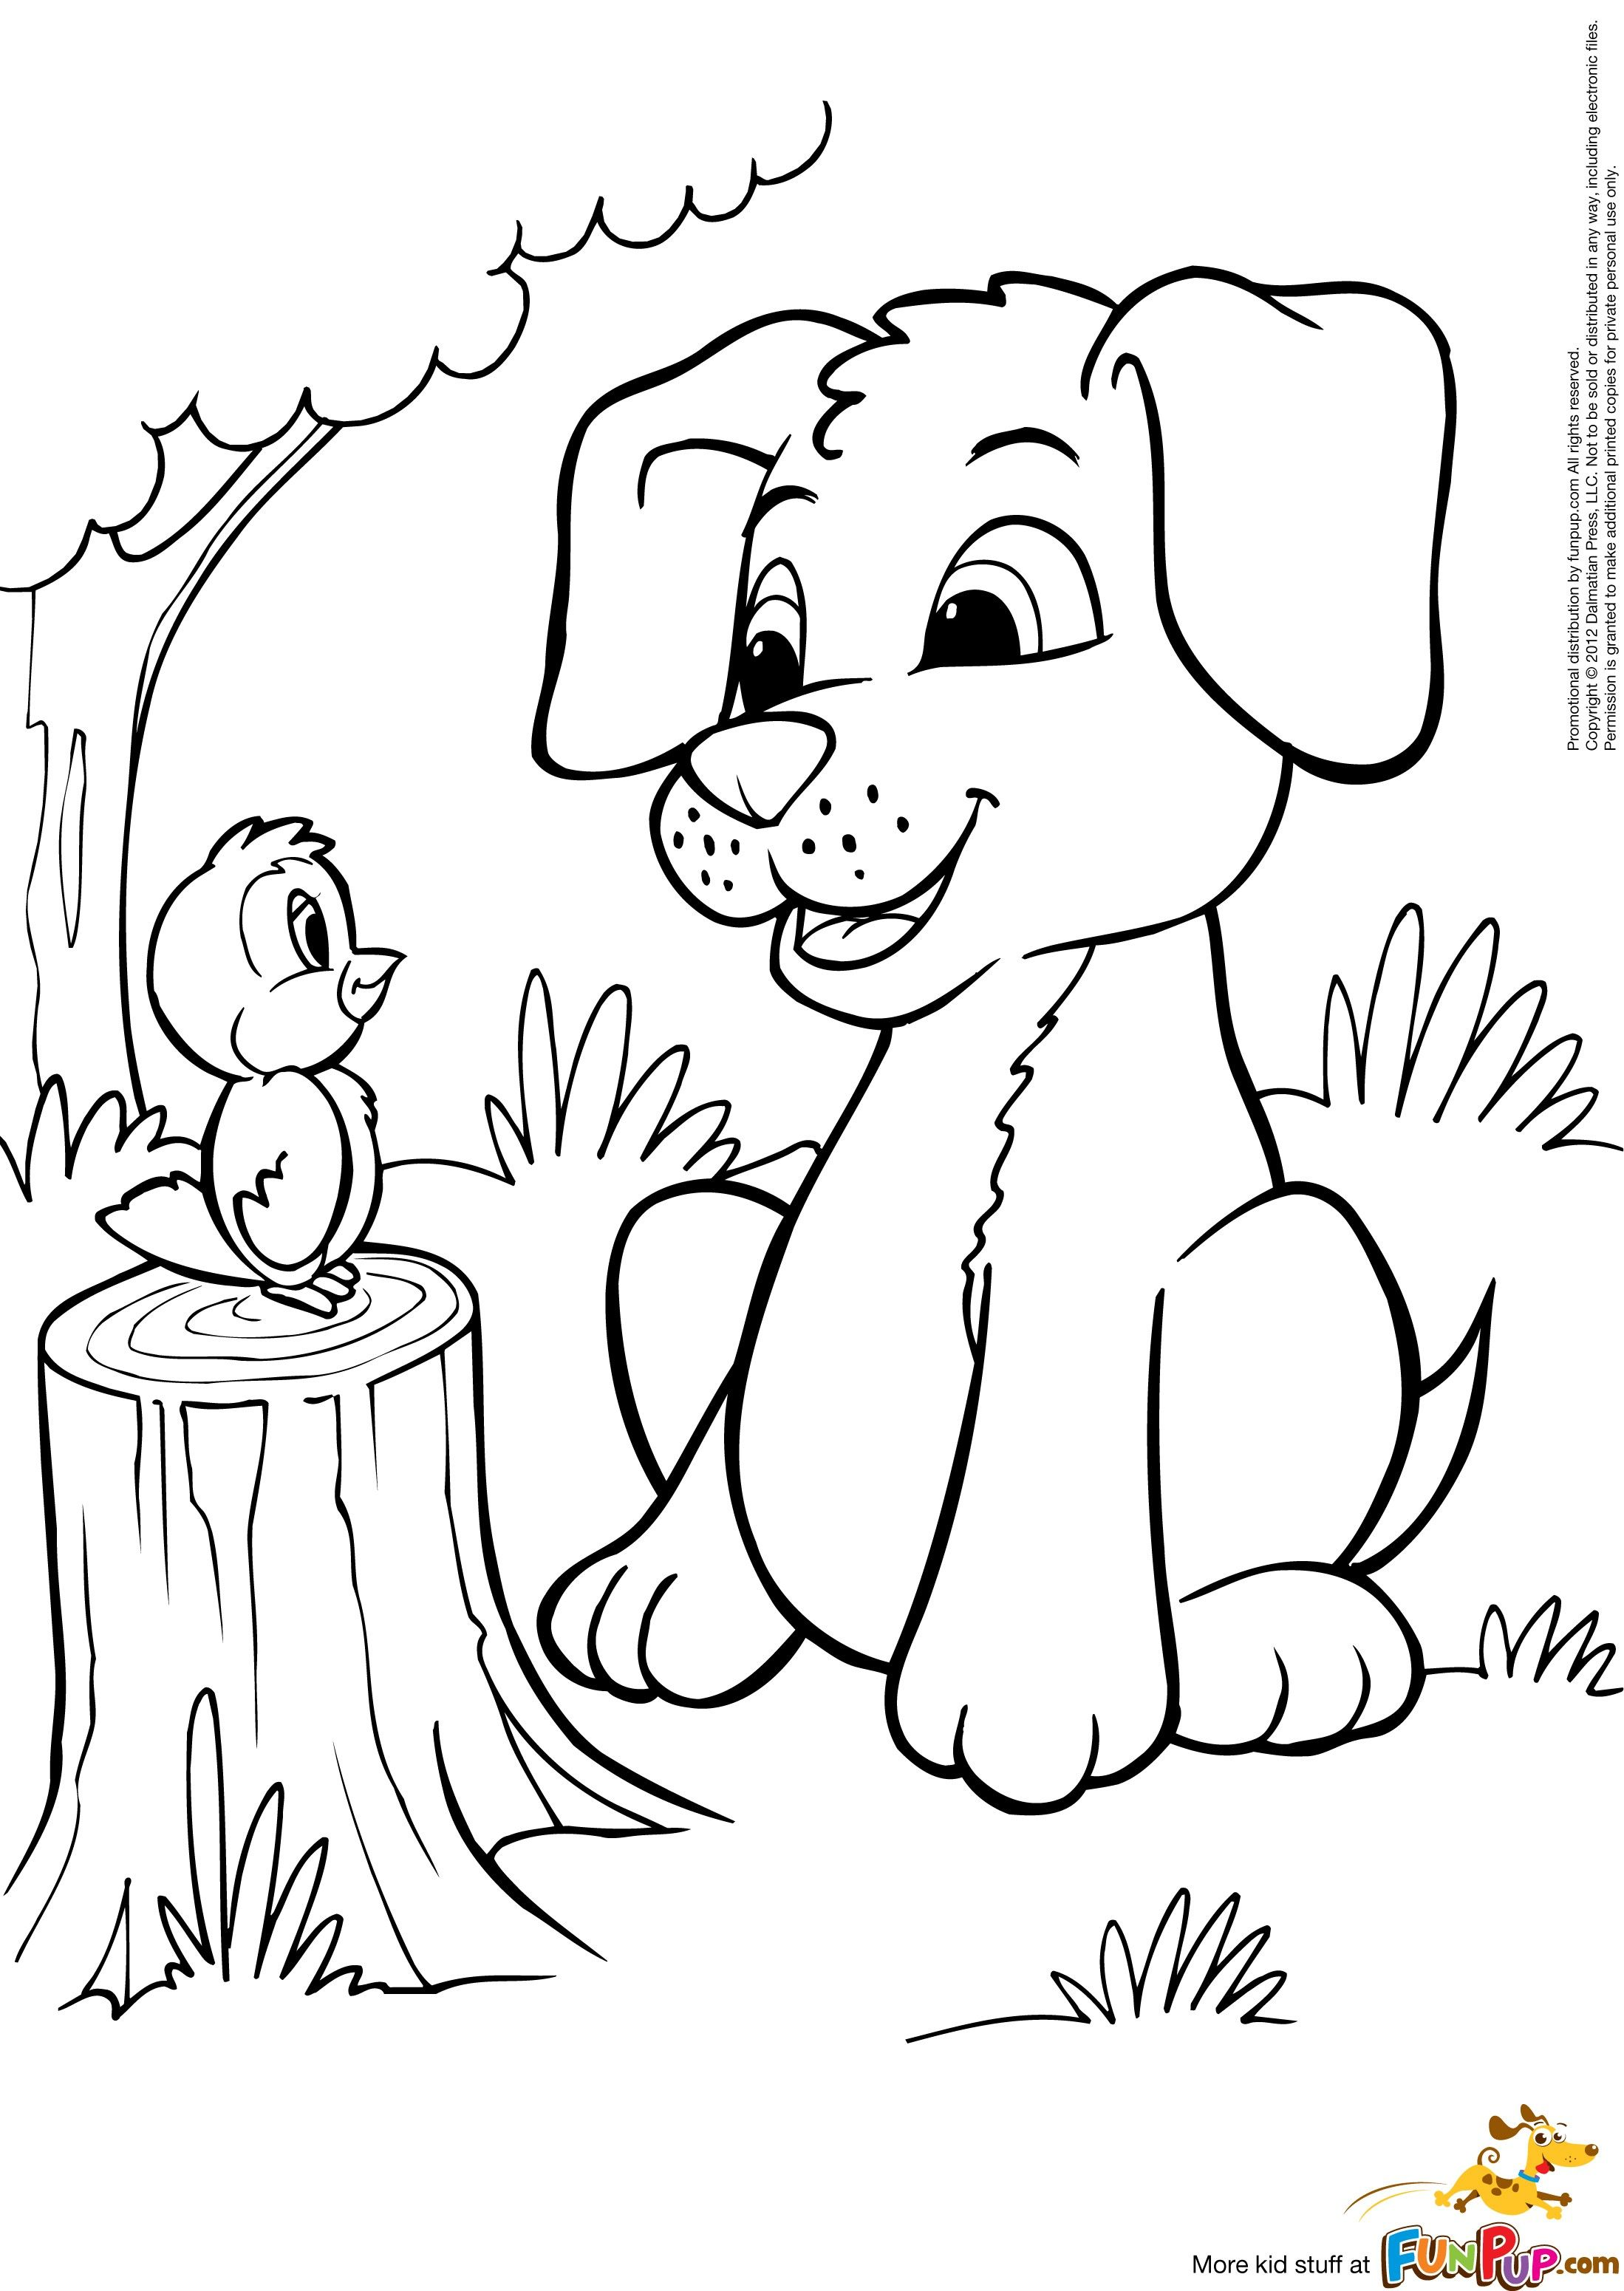 dog coloring pages to print out dog coloring pages to print out to coloring pages dog print out